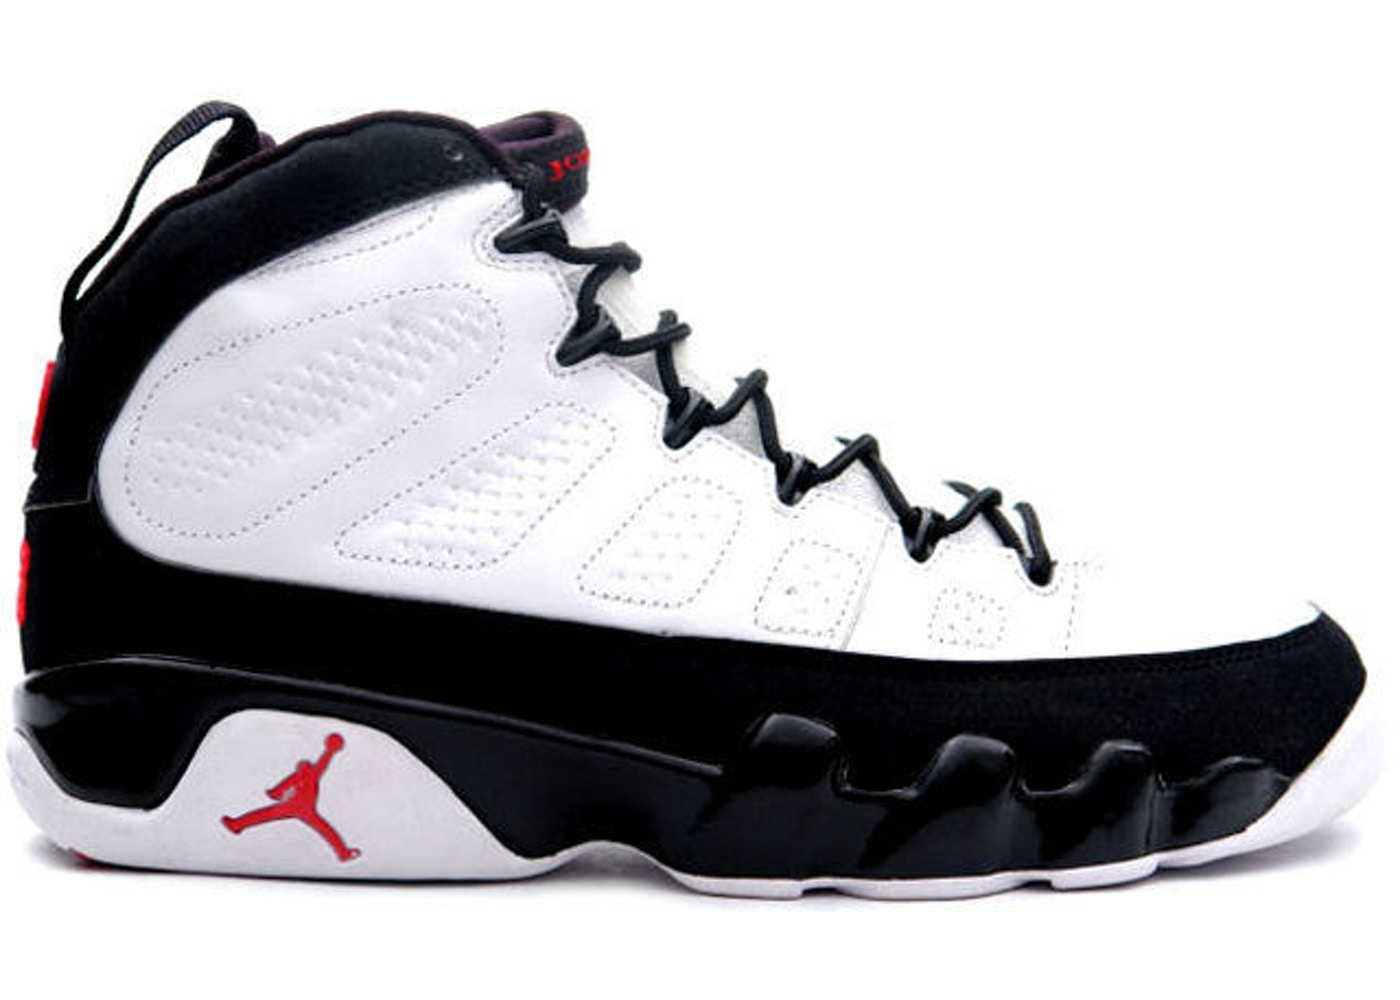 9c270b95fd0 Jordan 9 Retro White Black Red (2002) - 302370-101